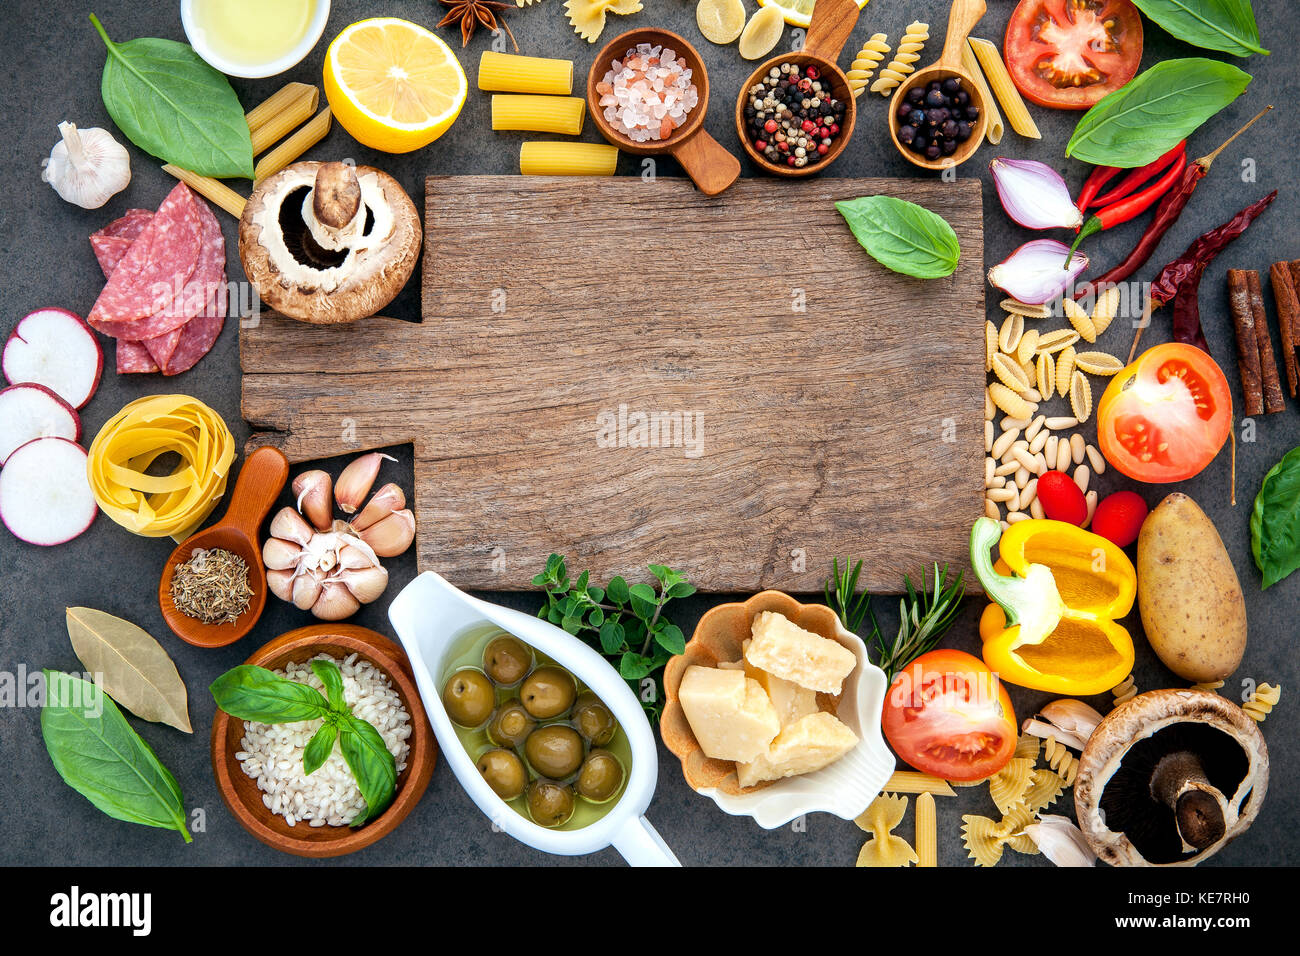 Italian food cooking ingredients on dark stone background with cutting board flat lay and copy space. - Stock Image